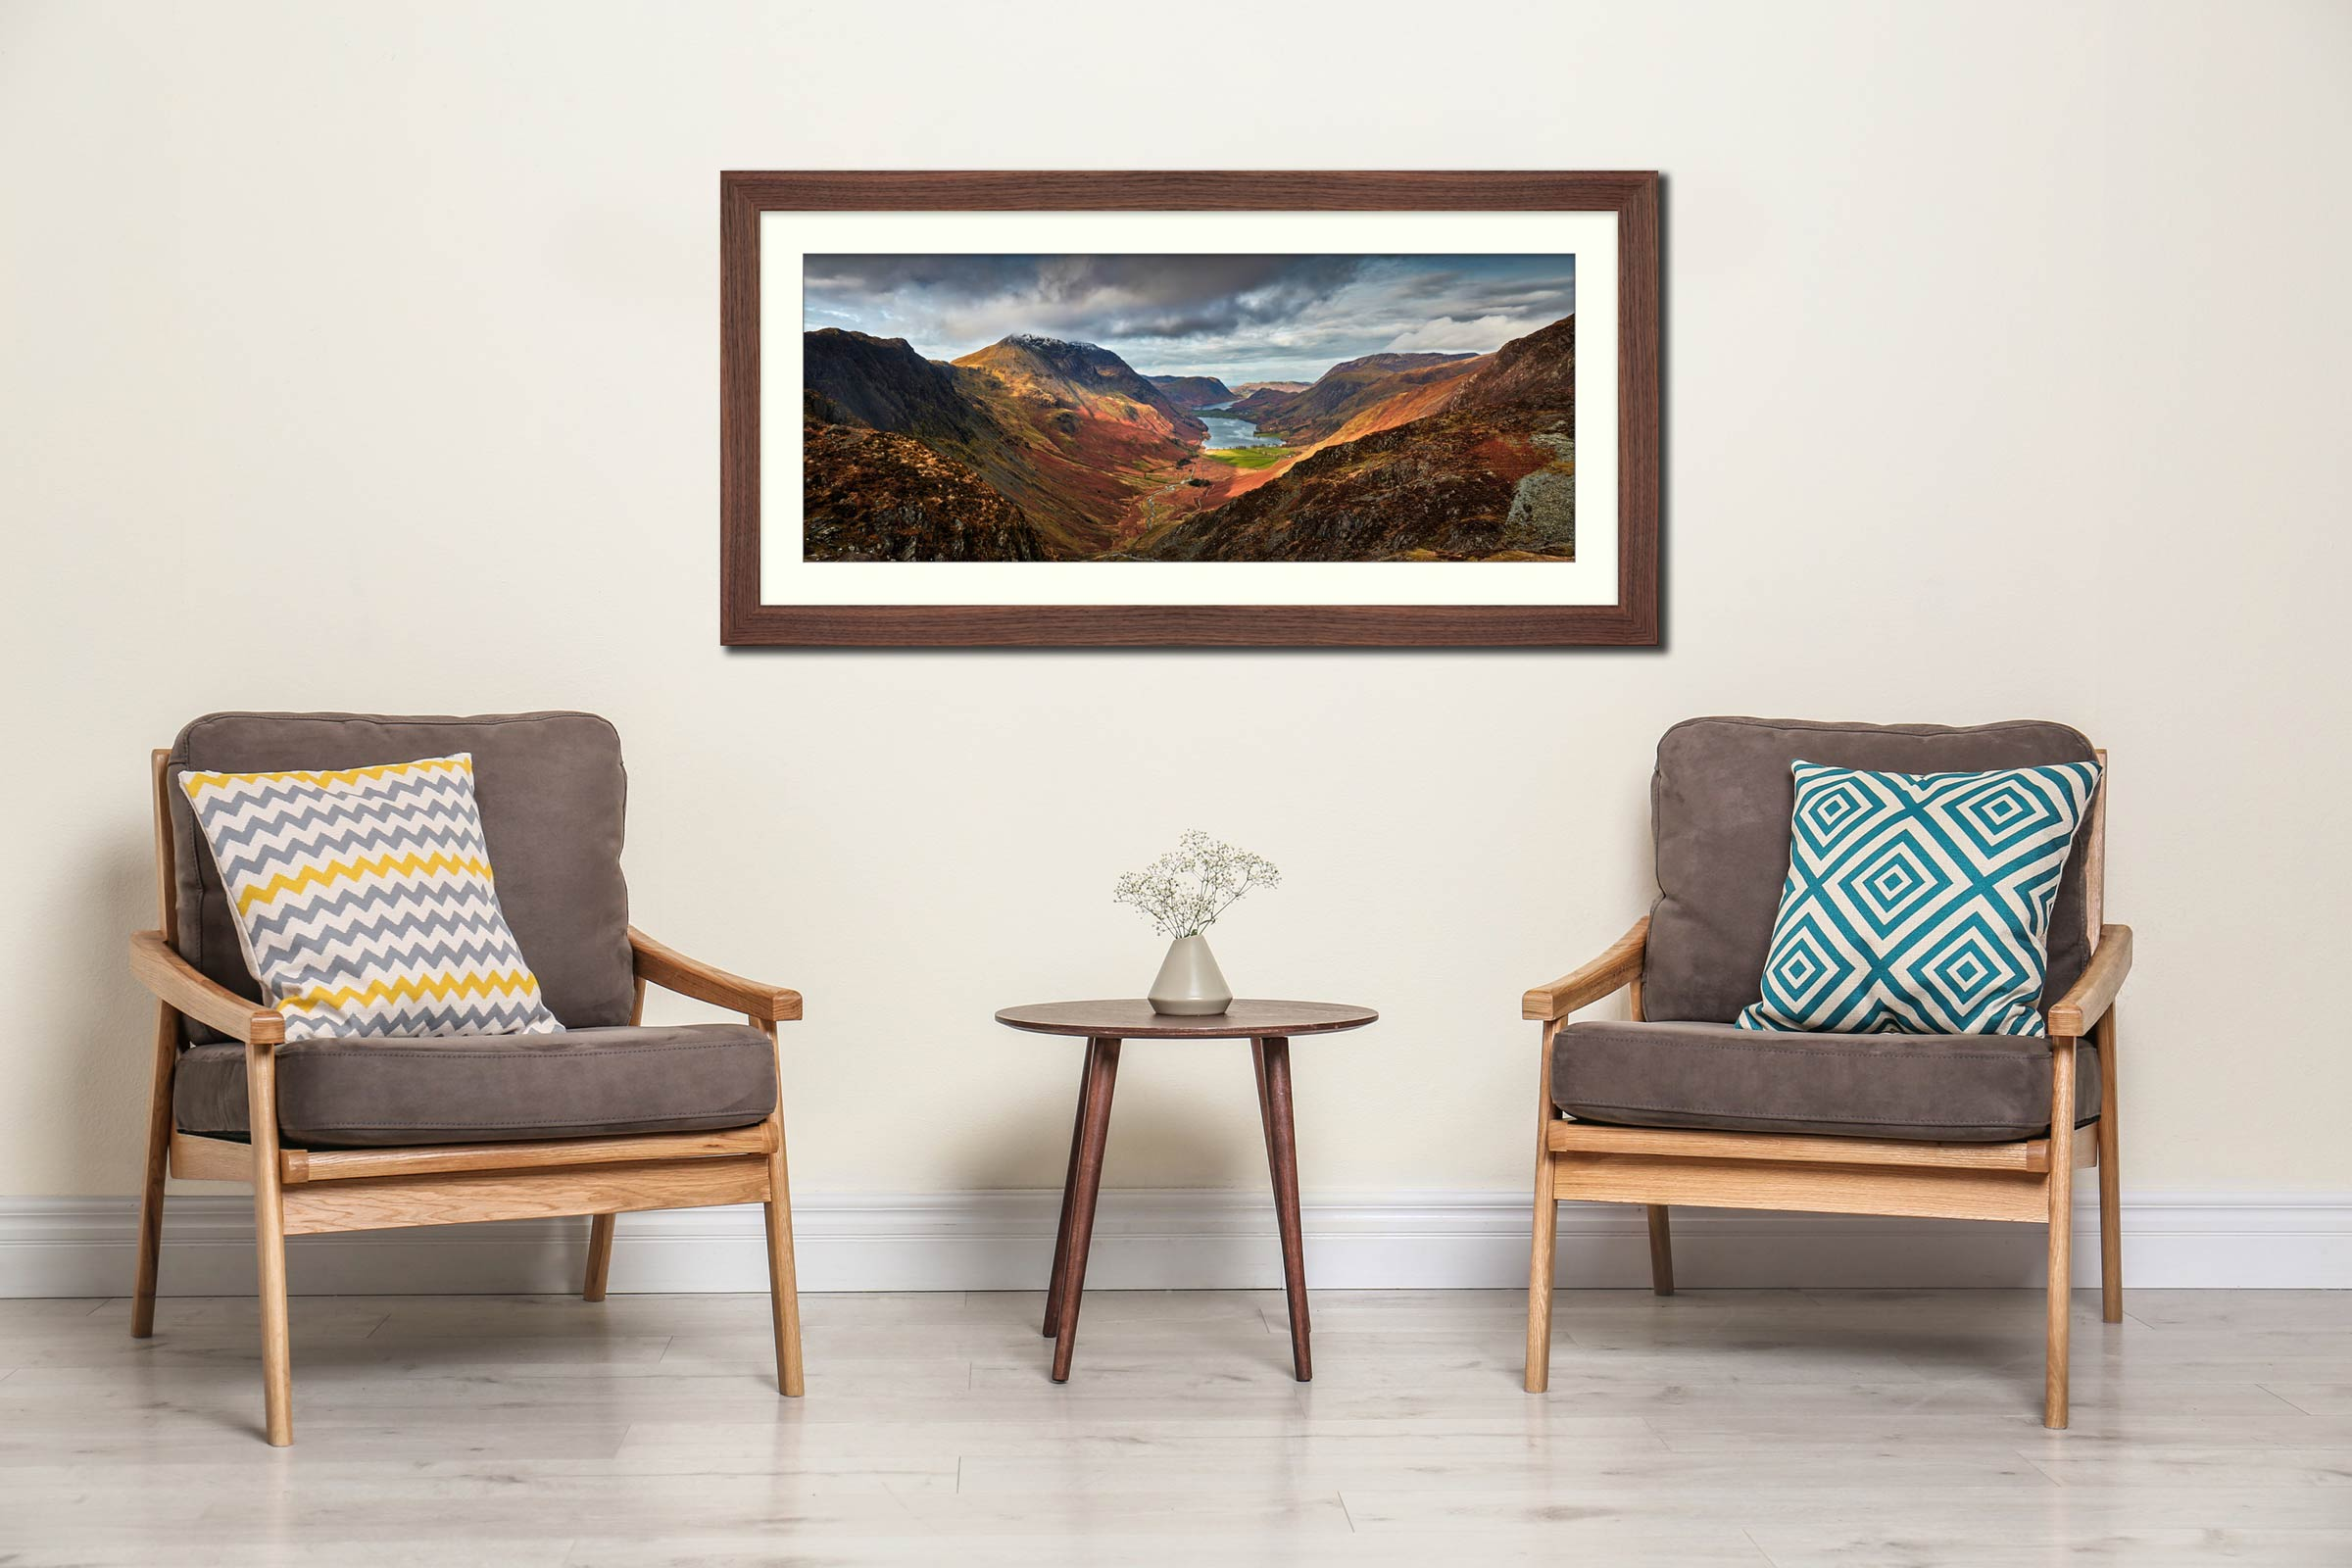 Buttermere Valley and High Crag - Framed Print with Mount on Wall